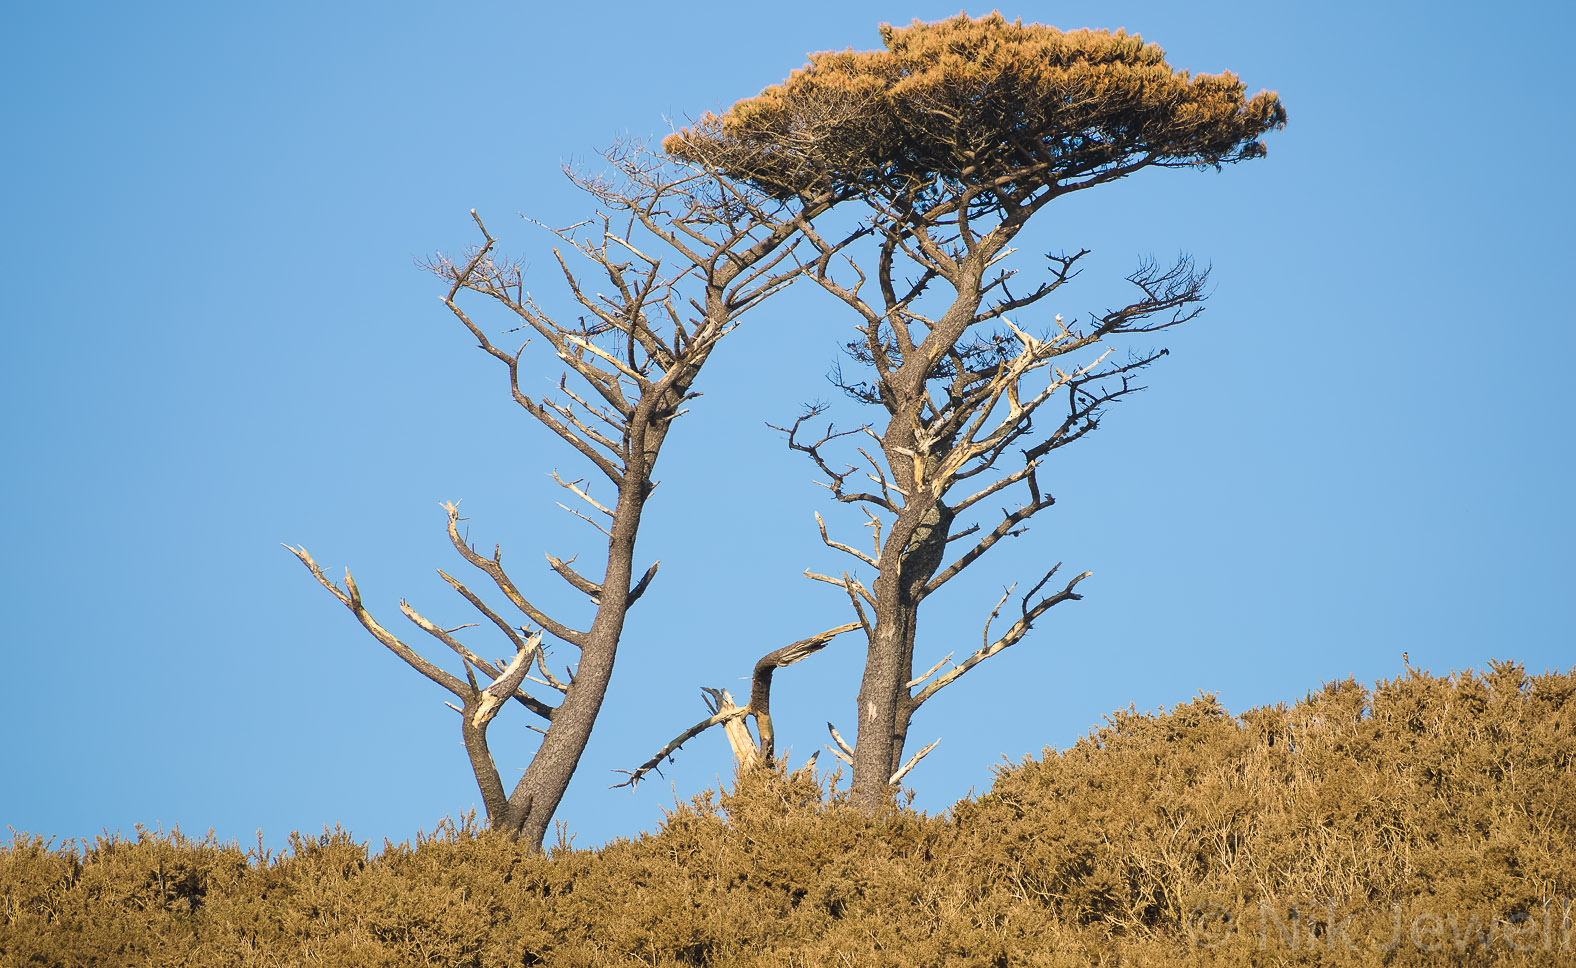 Dead tree and live tree near Mothecombe in the South Hams of Devon